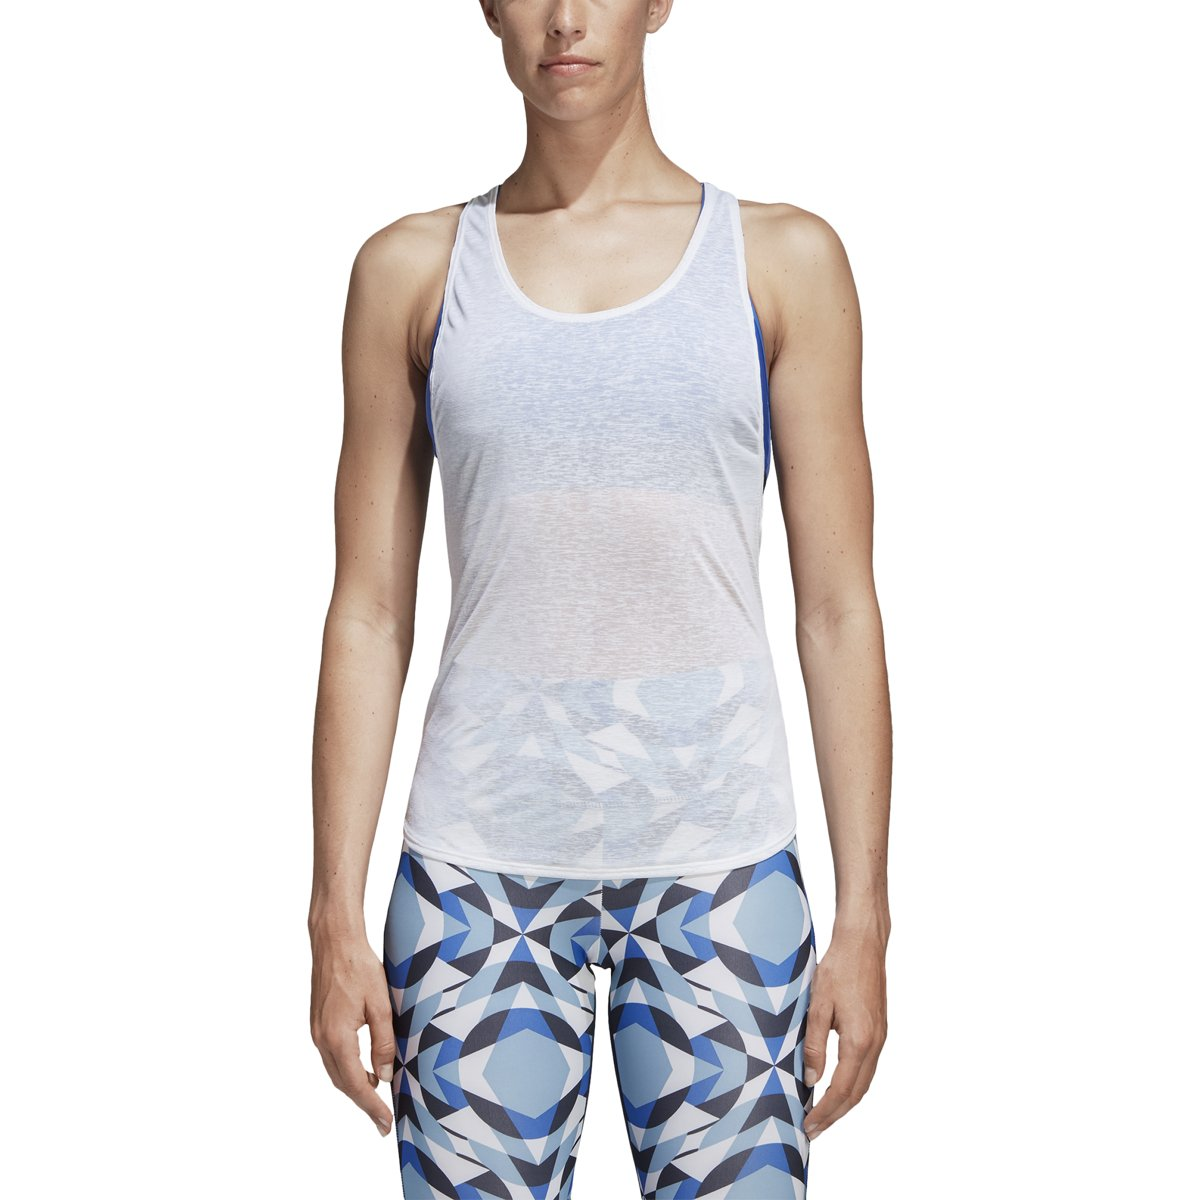 Amazon.com : adidas Womens Wanderlust Yoga Two-in-One Tank ...